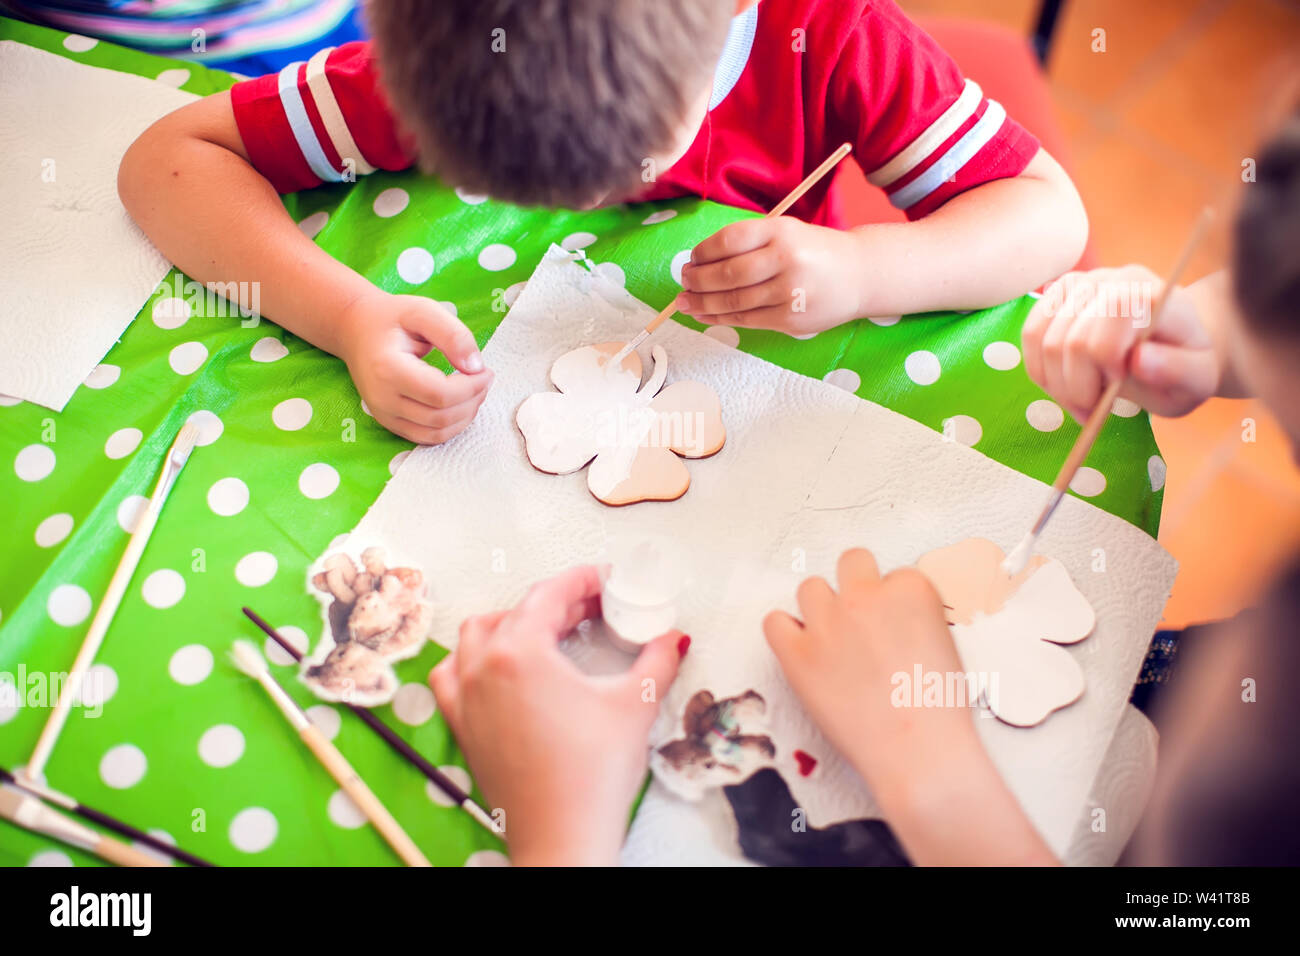 Children hands making artworks with wood and paint crafts. workplace and handcraft Decoupage Stock Photo